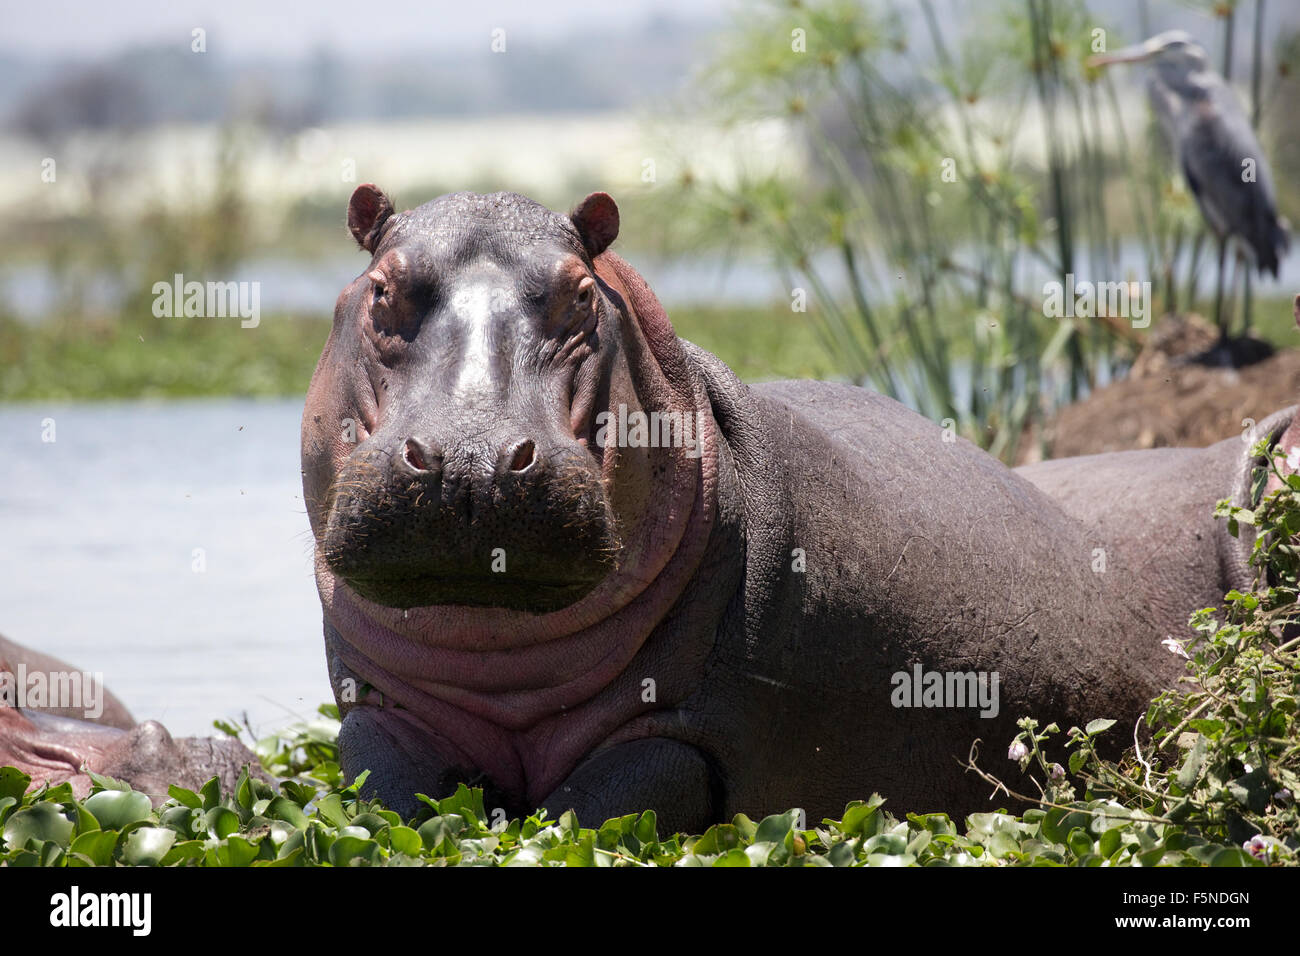 Hippopotamus amphibius half out of water looking over water hyacinth Lake Naivasha Kenya - Stock Image